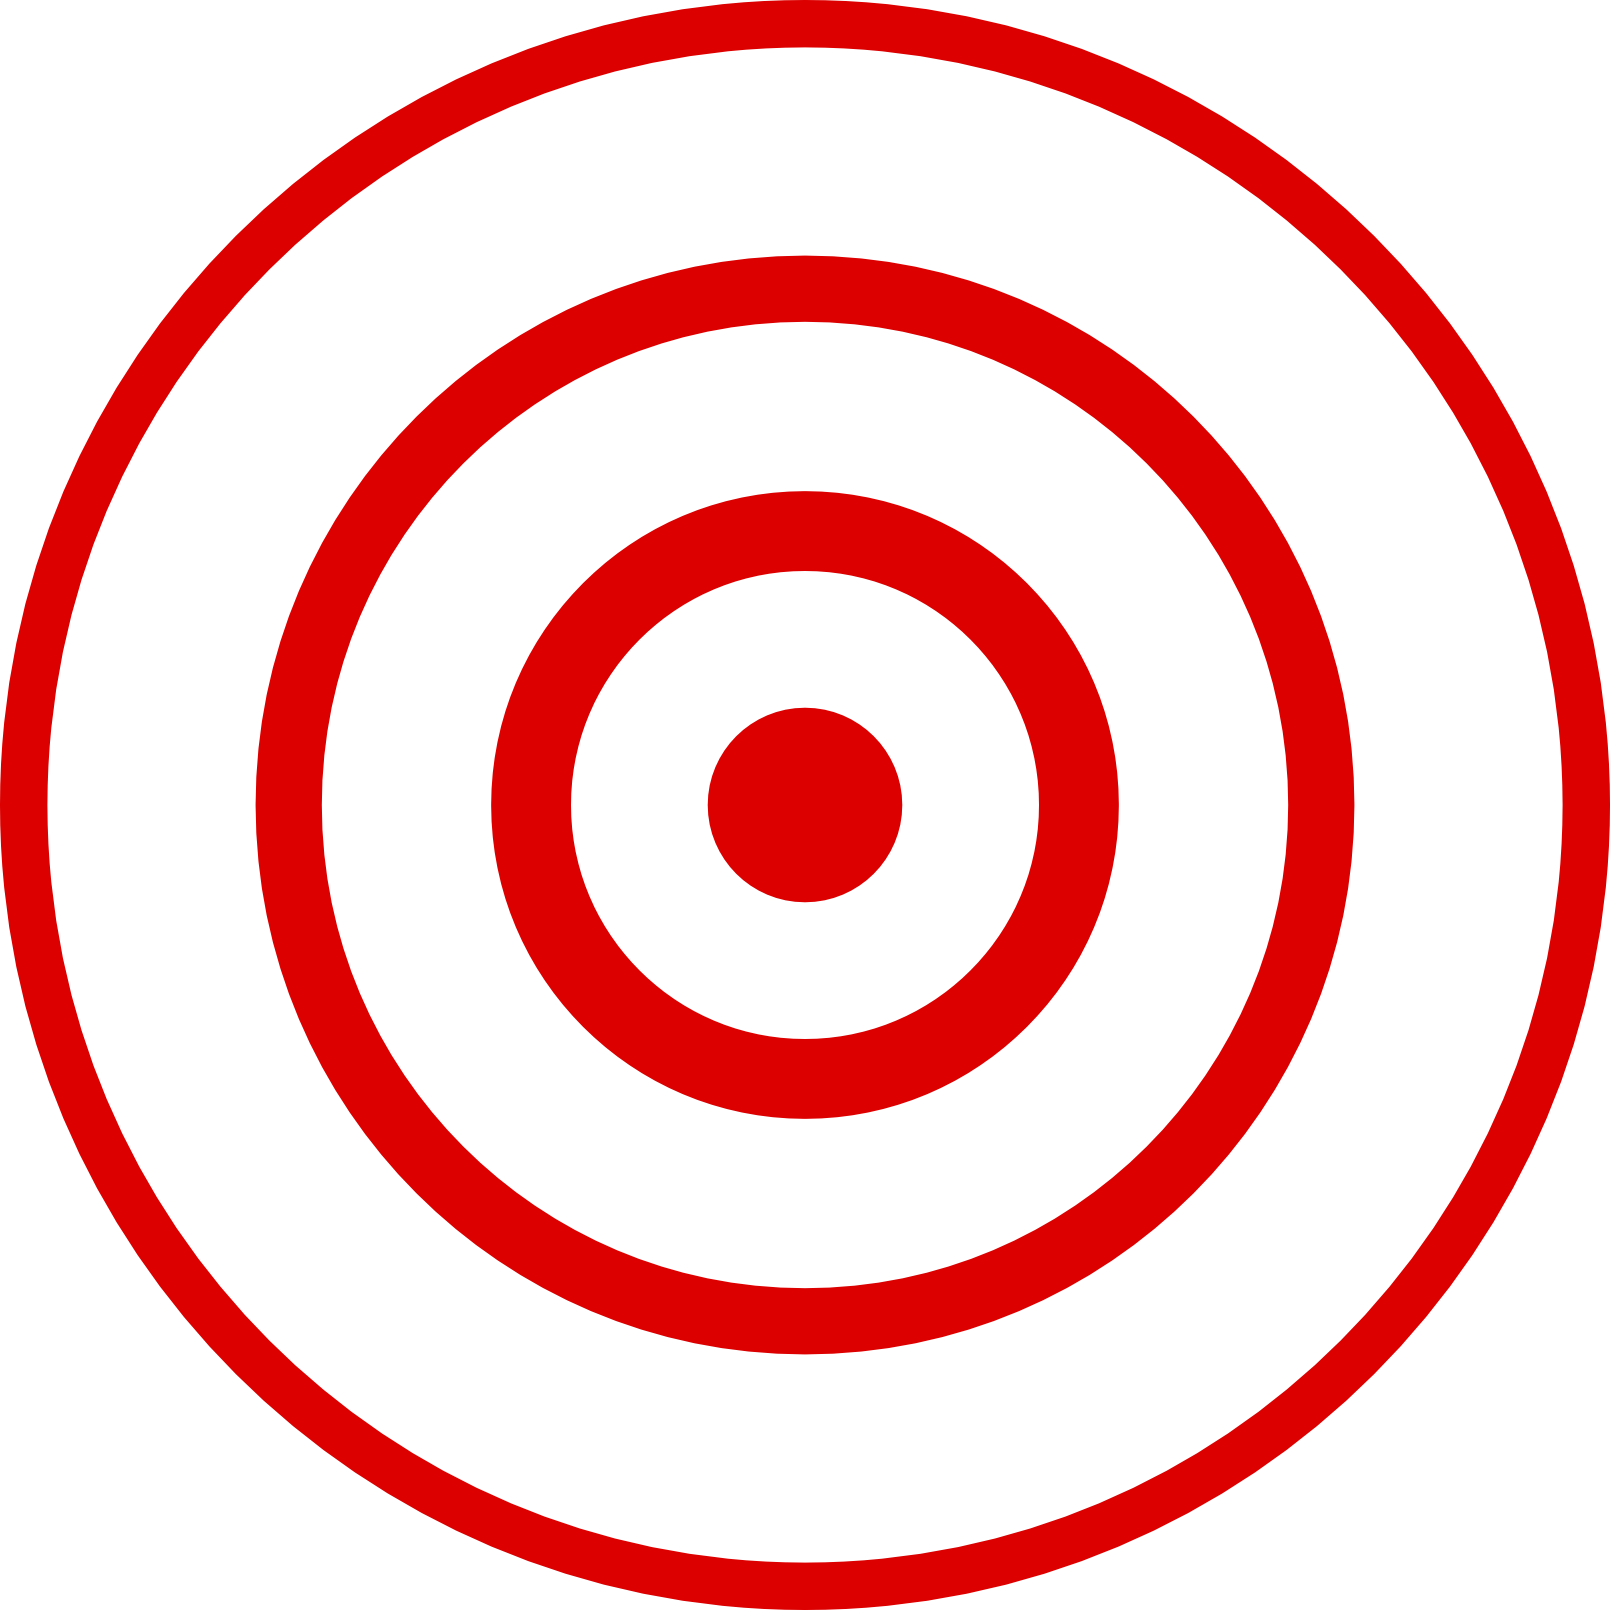 Red bullseye png. File wikimedia commons filebullseyepng